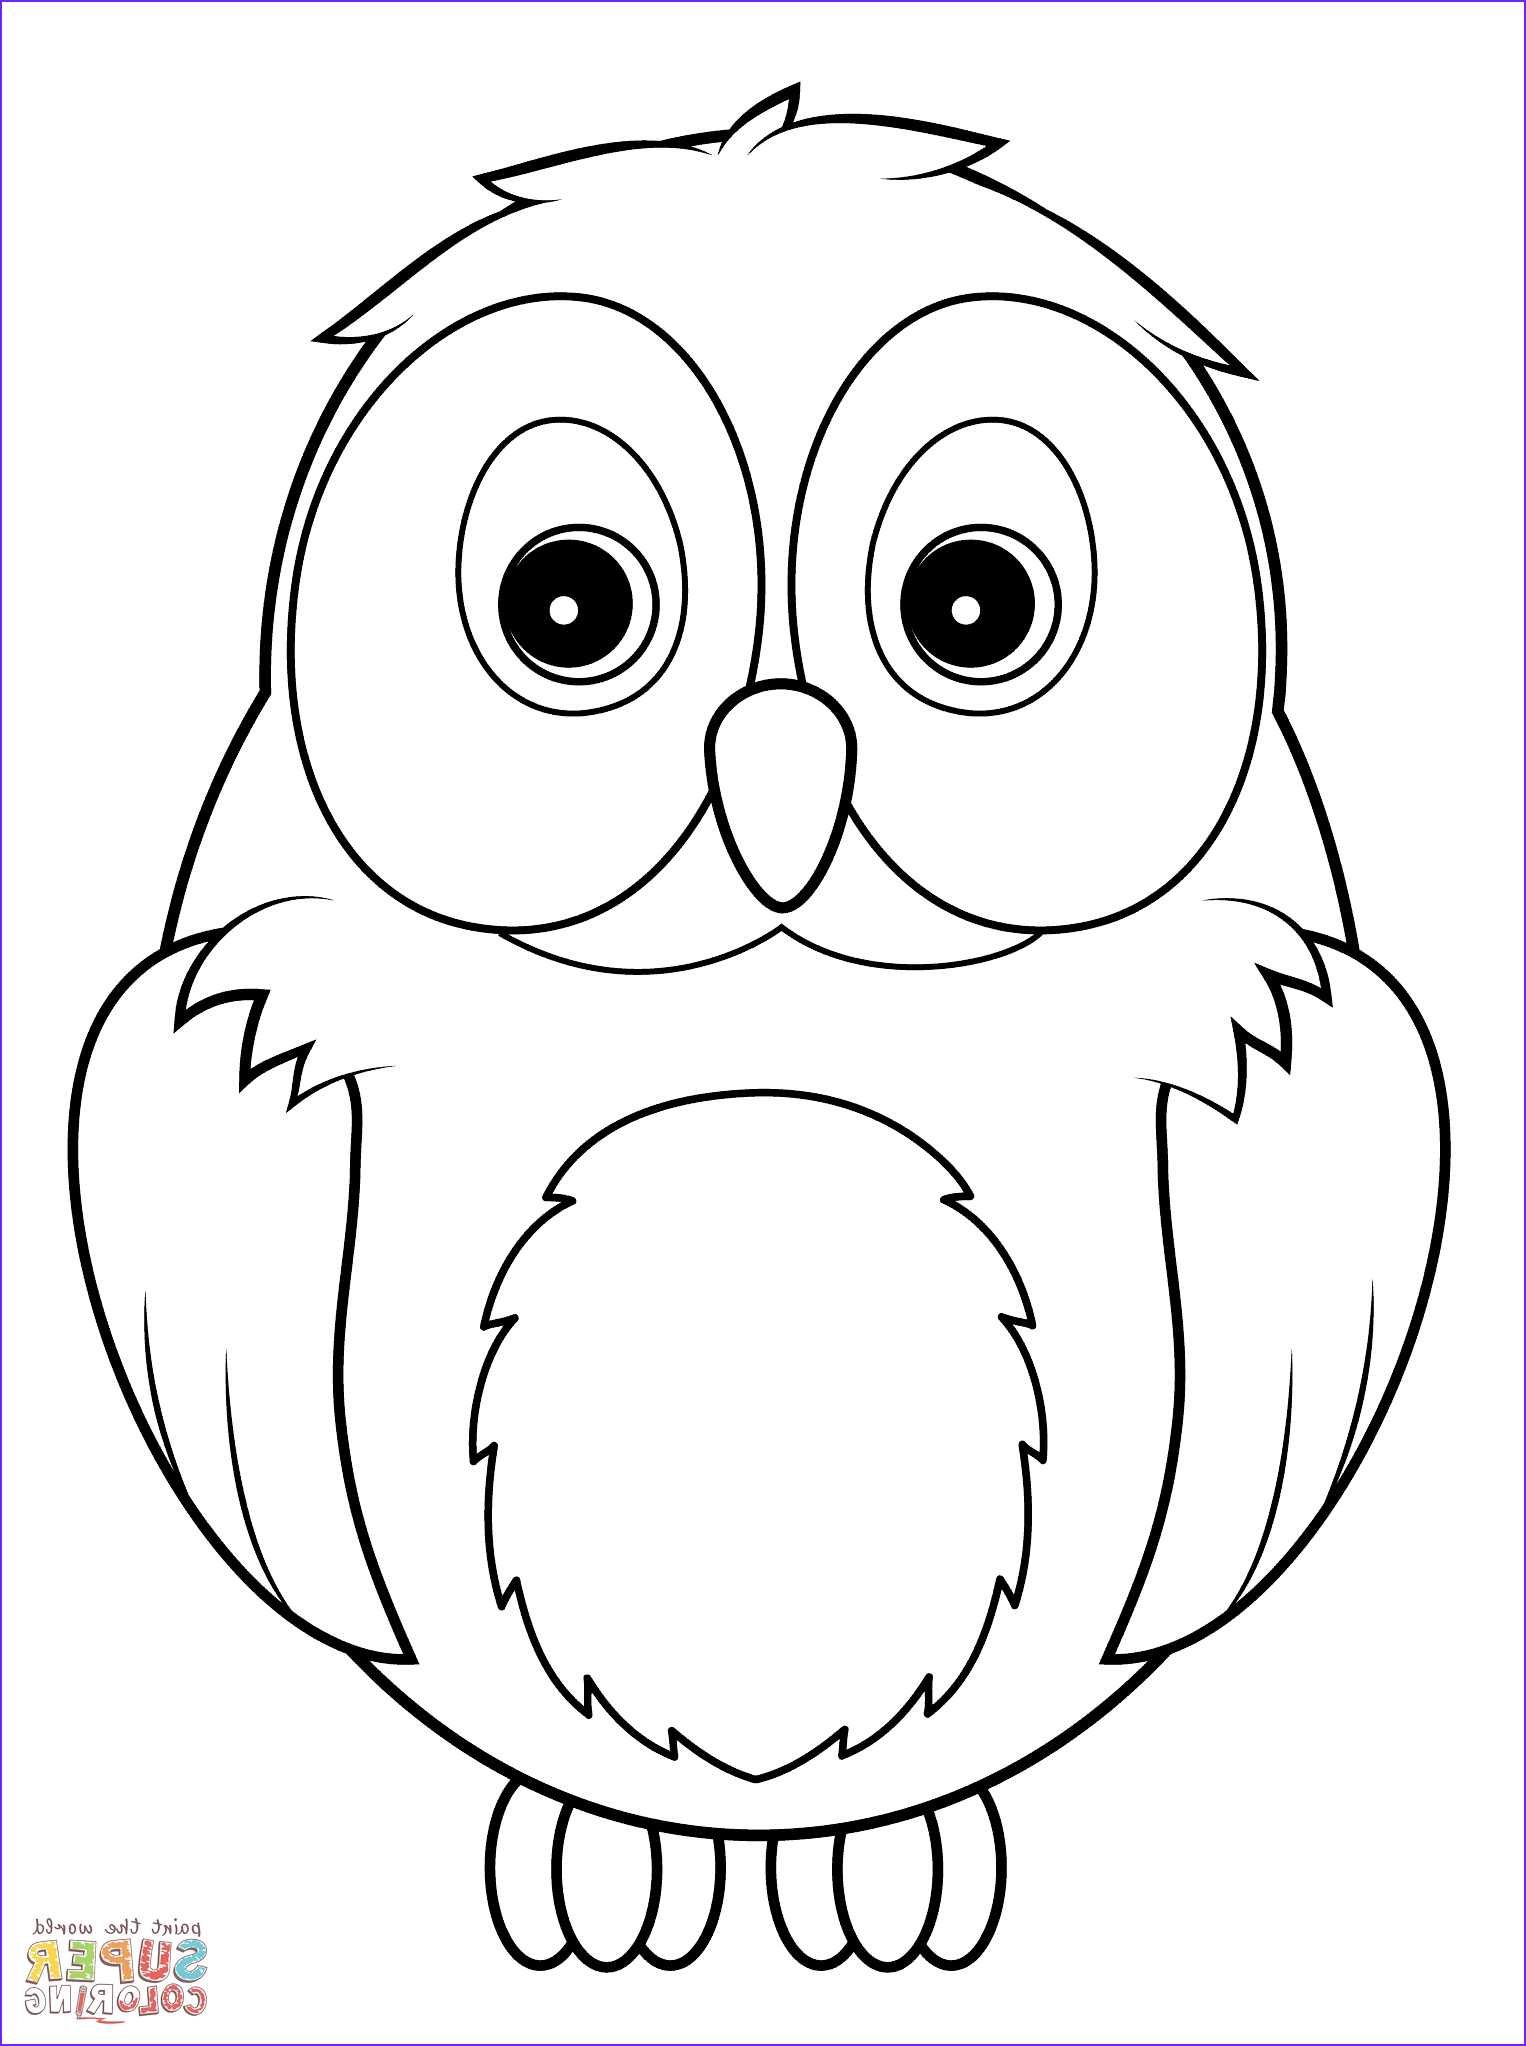 Owl Coloring Luxury Image Cute Owl Coloring Page